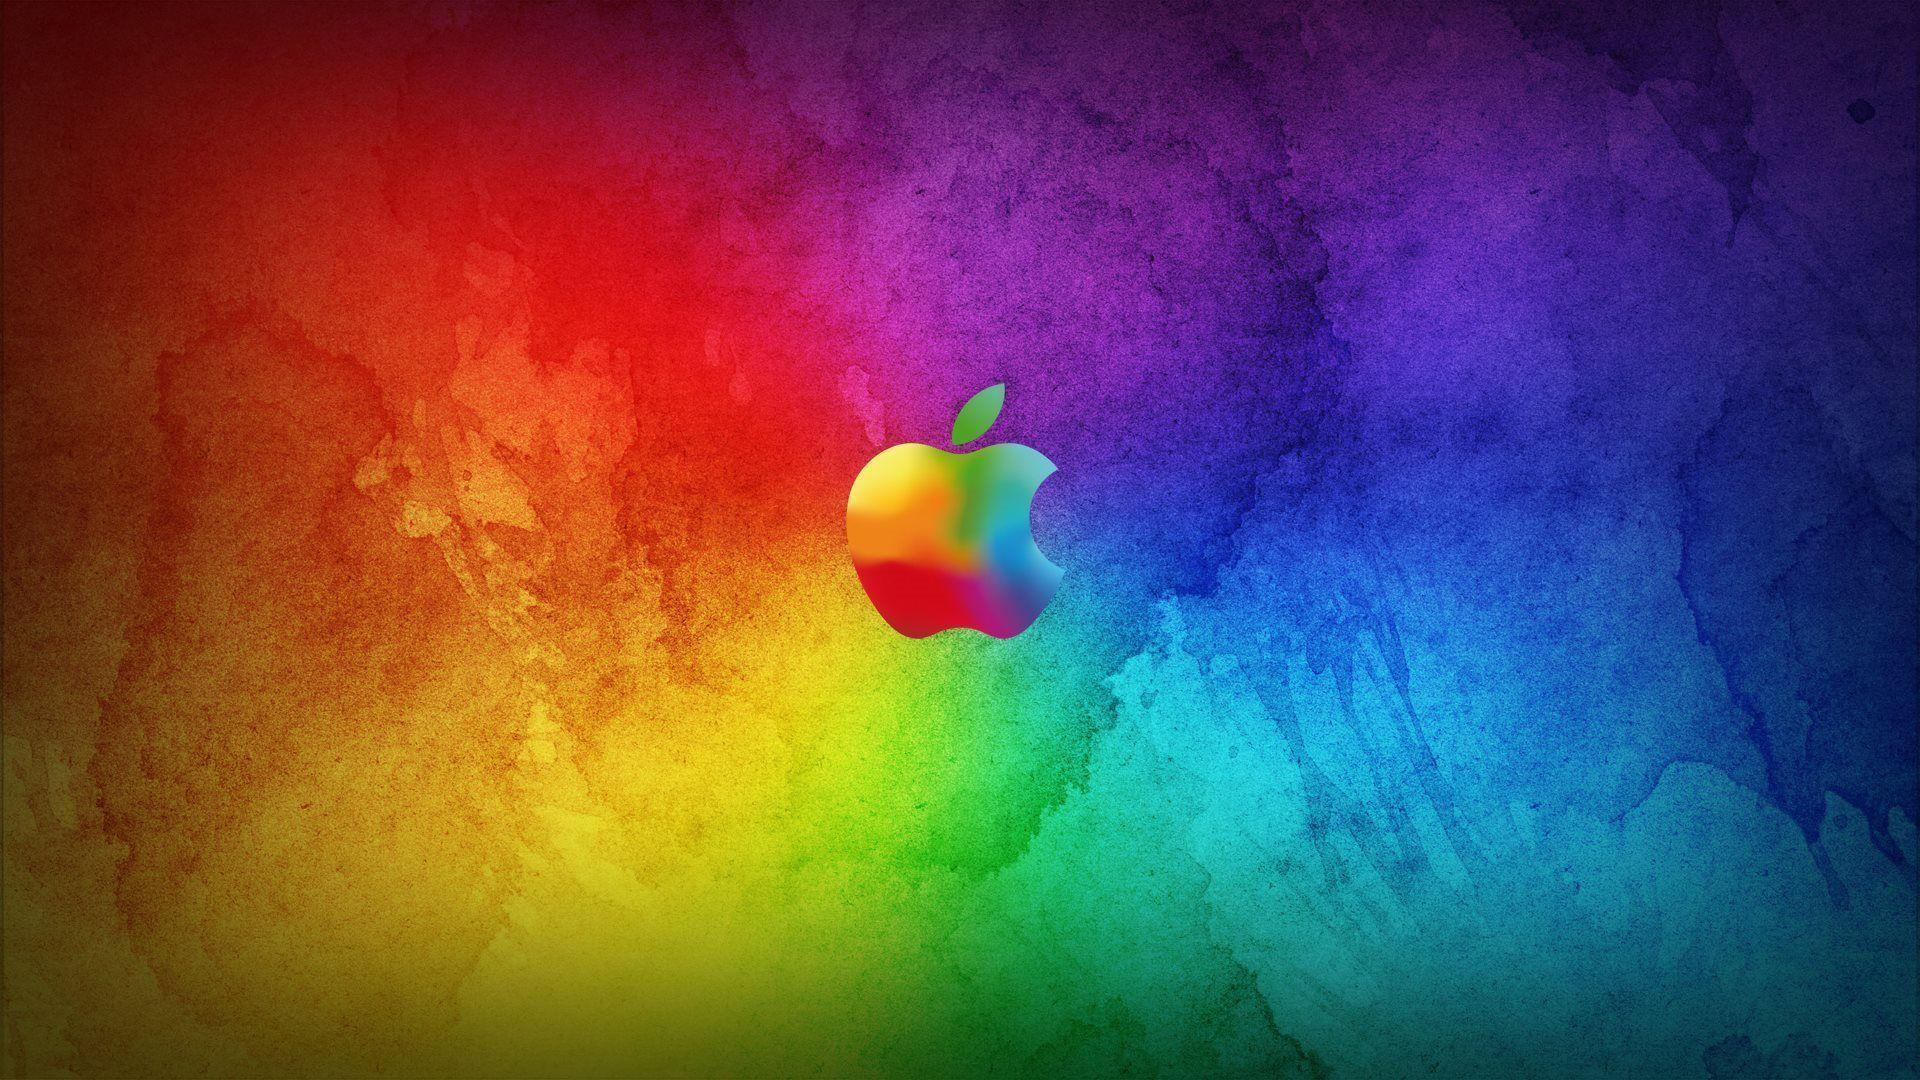 Colorful Apple Logo HD Wallpaper Widescreen #1544 Wallpaper .